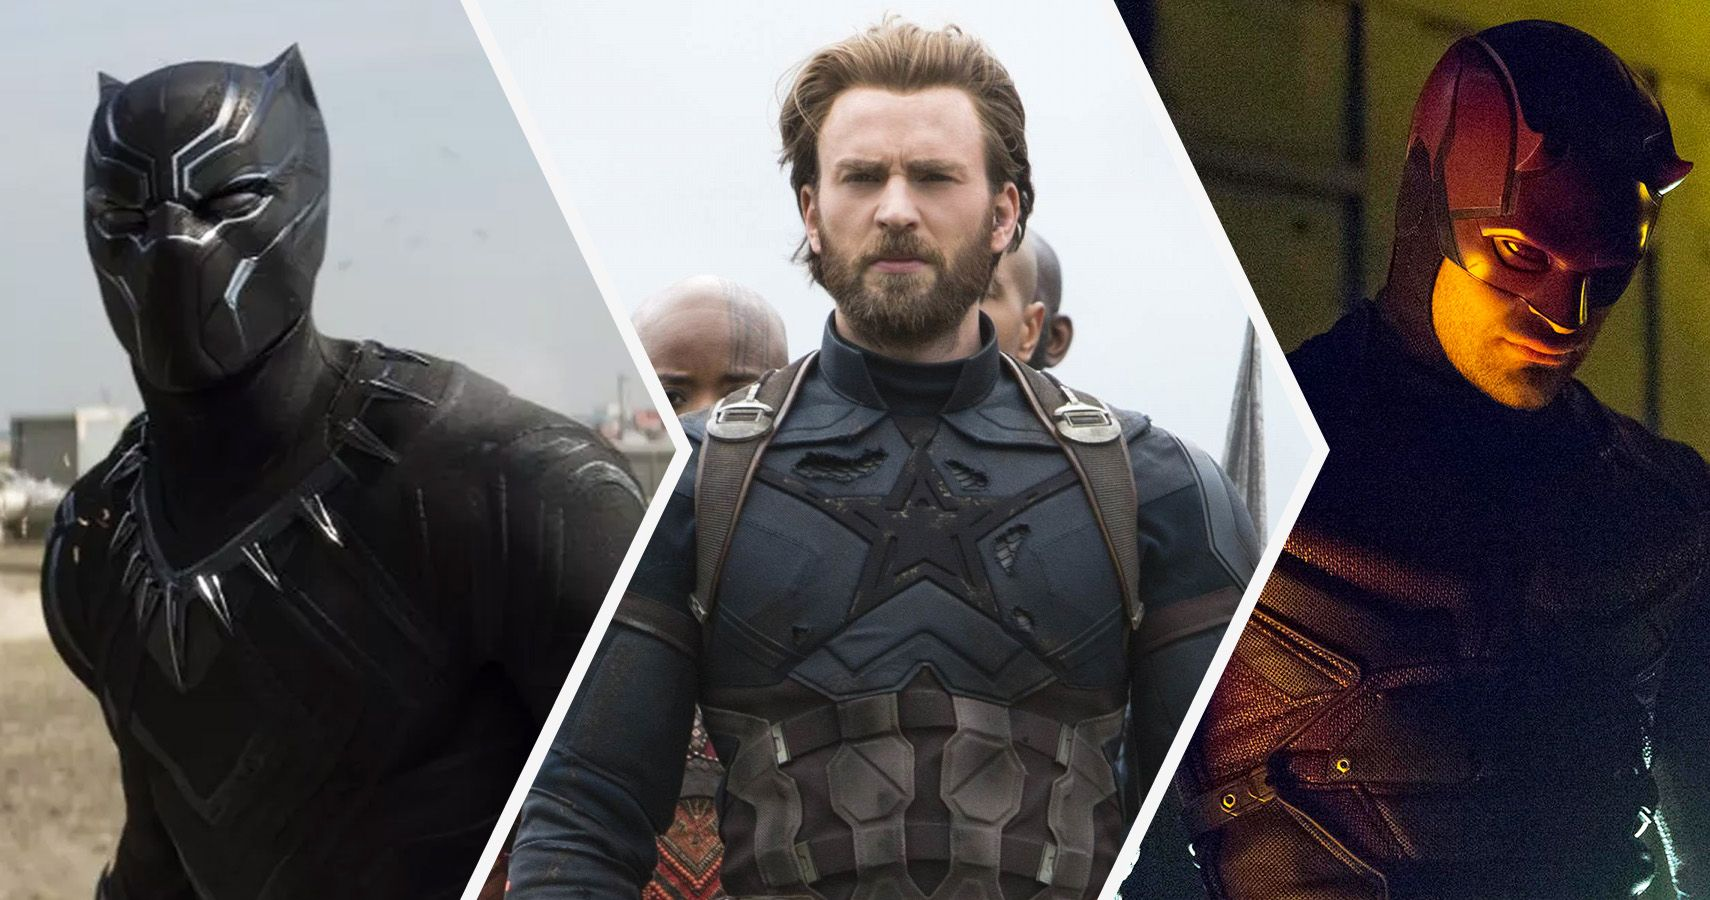 War Machines: The 30 Most Skilled Fighters In The MCU Ranked